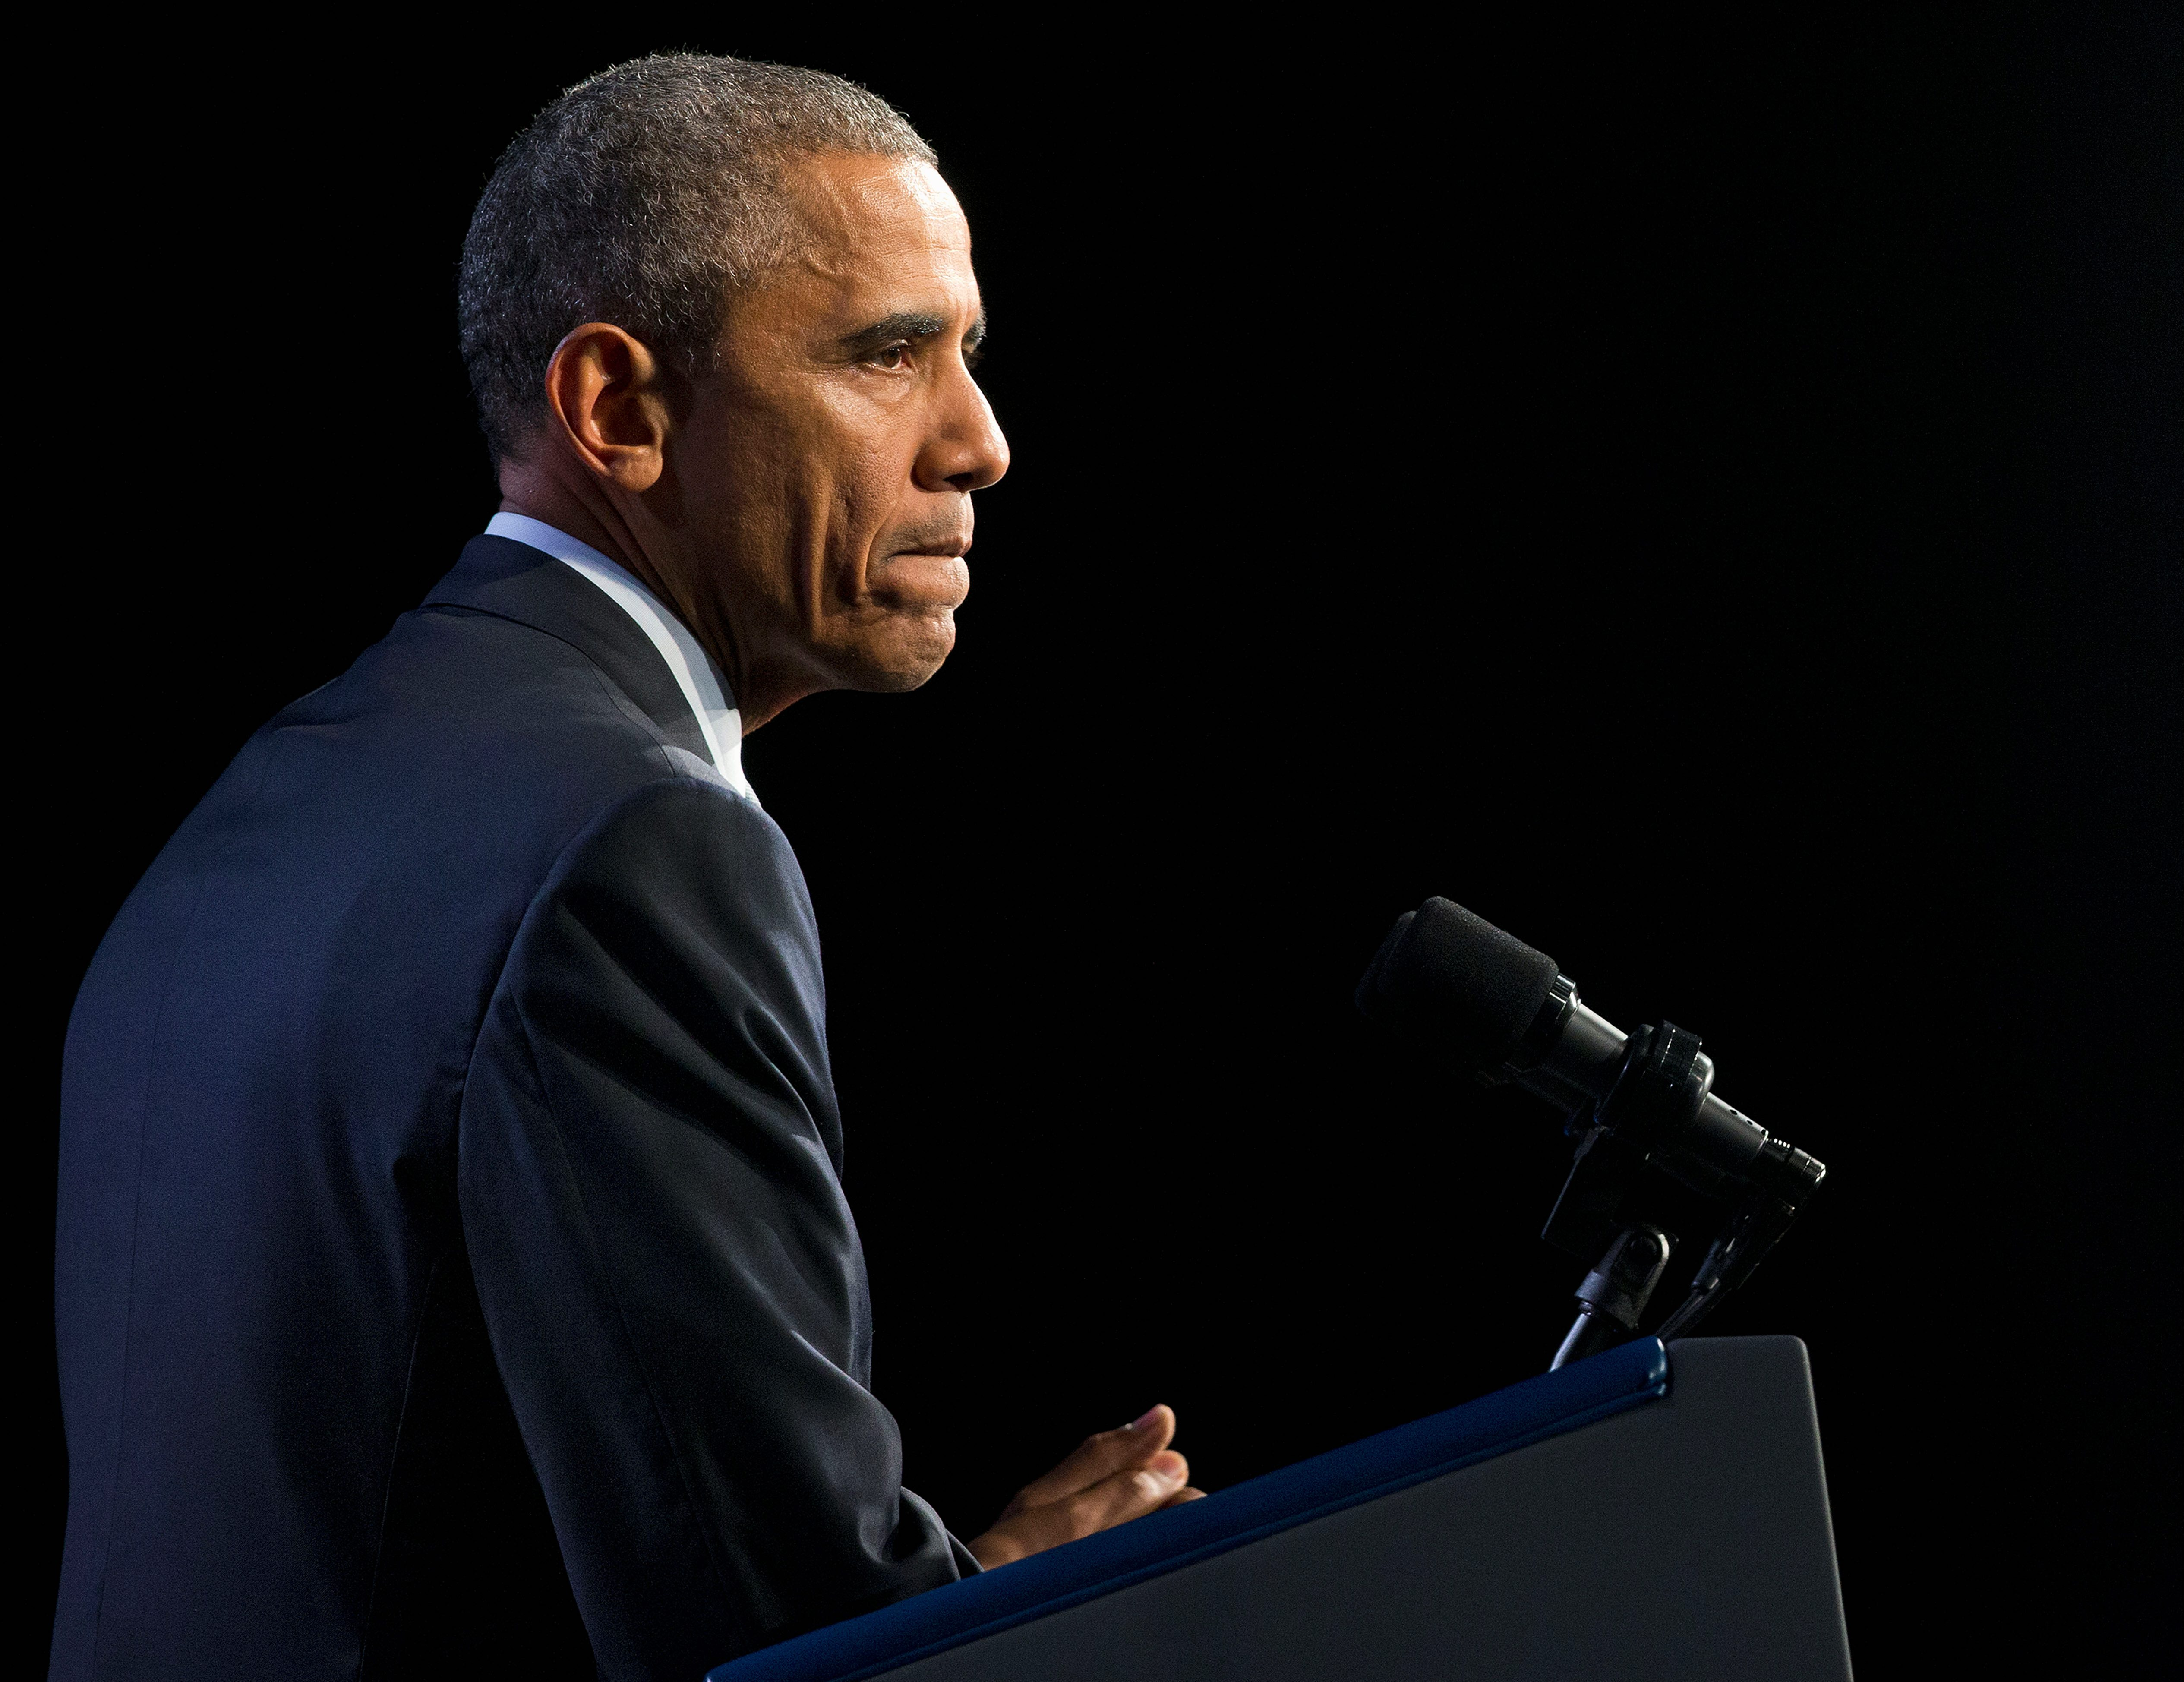 Obama presidency to end with $20 trillion national debt